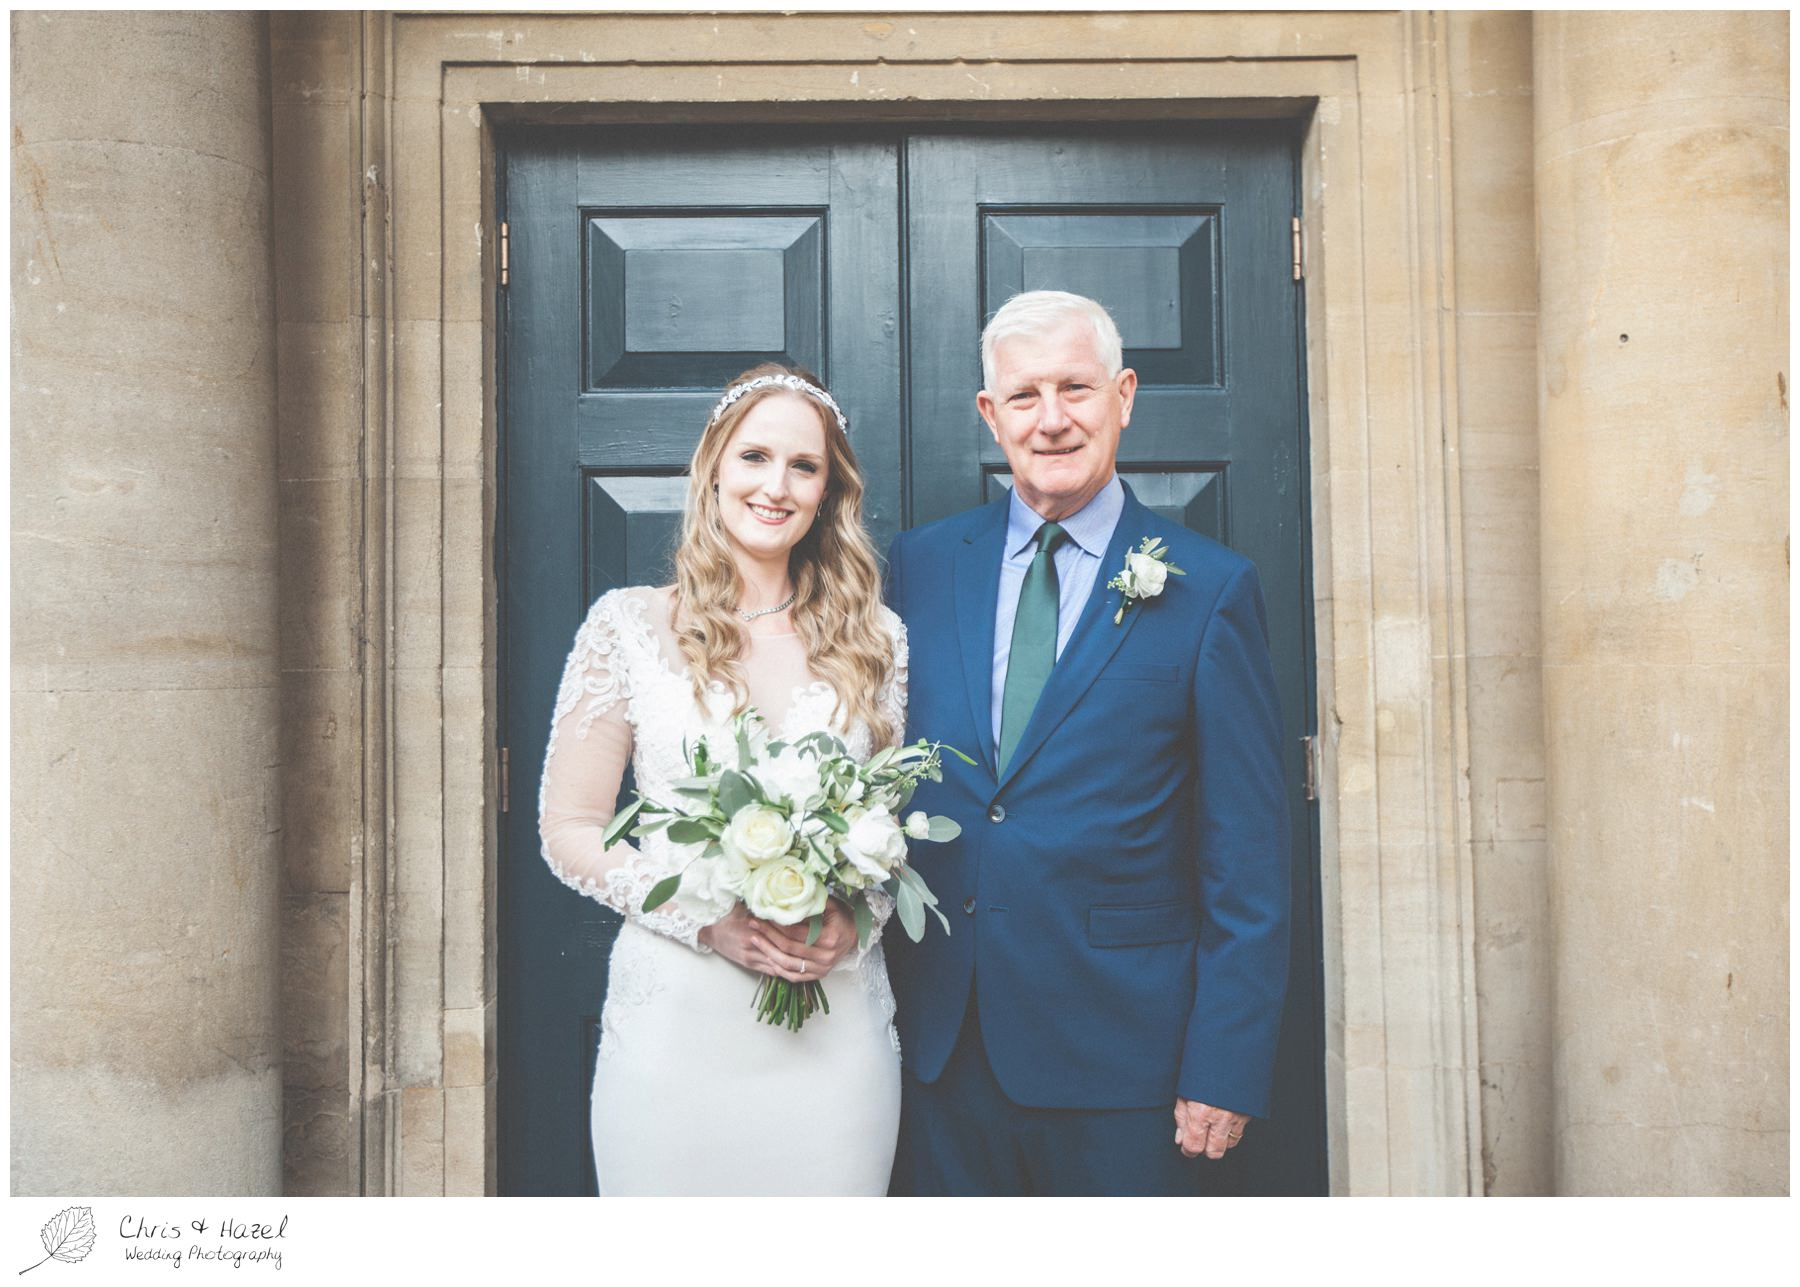 Bride with Father, The Roman Baths Wedding Photography, Roman Baths Wedding Photographer, Wedding in Bath, Bath Wedding Day, documentary wedding photography, Chris and Hazel Wedding Photography Bath, Andy Frost Sian Upson